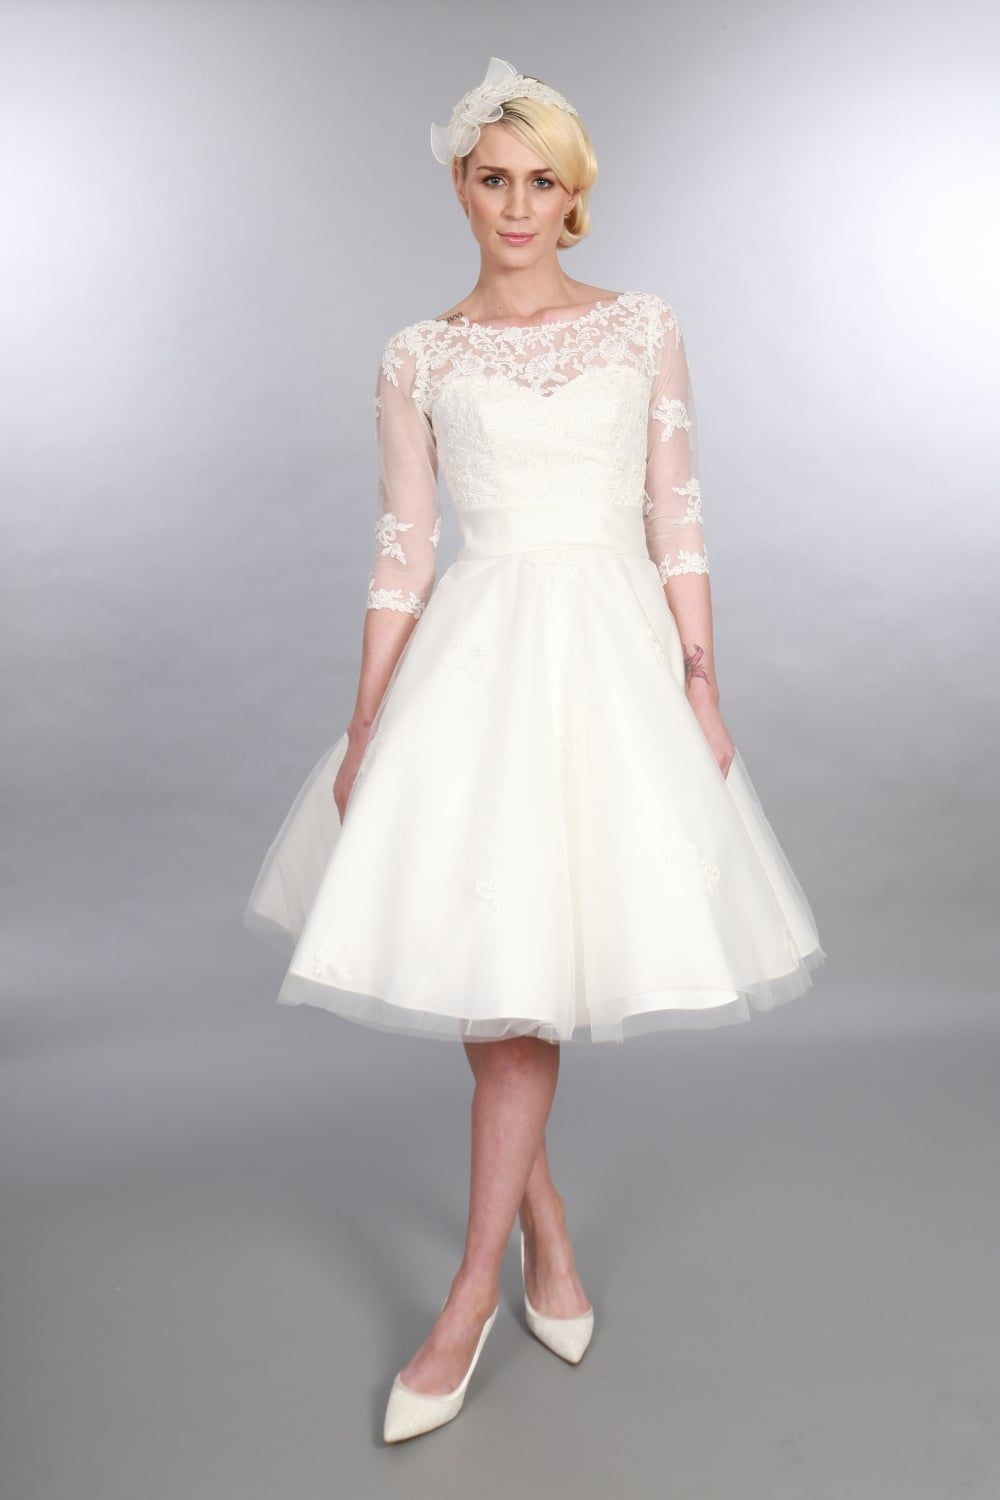 Timeless Chic POLLY Tea Length Vintage 1950s Style Wedding Dress Sleeves